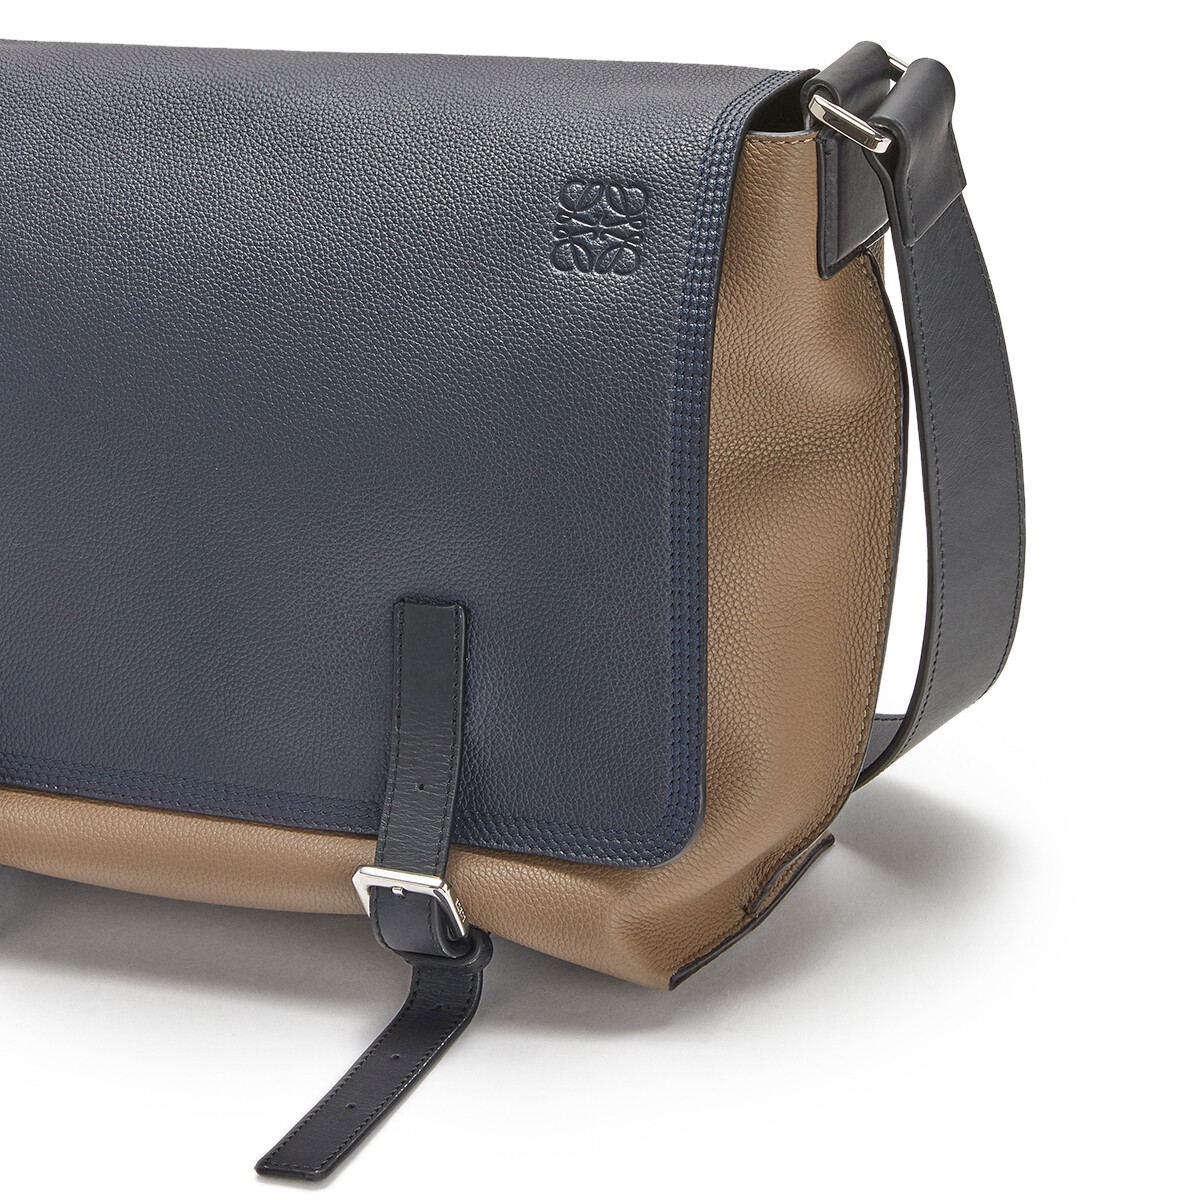 LOEWE Military Messenger Small Bag Deep Blue/Dark Taupe front